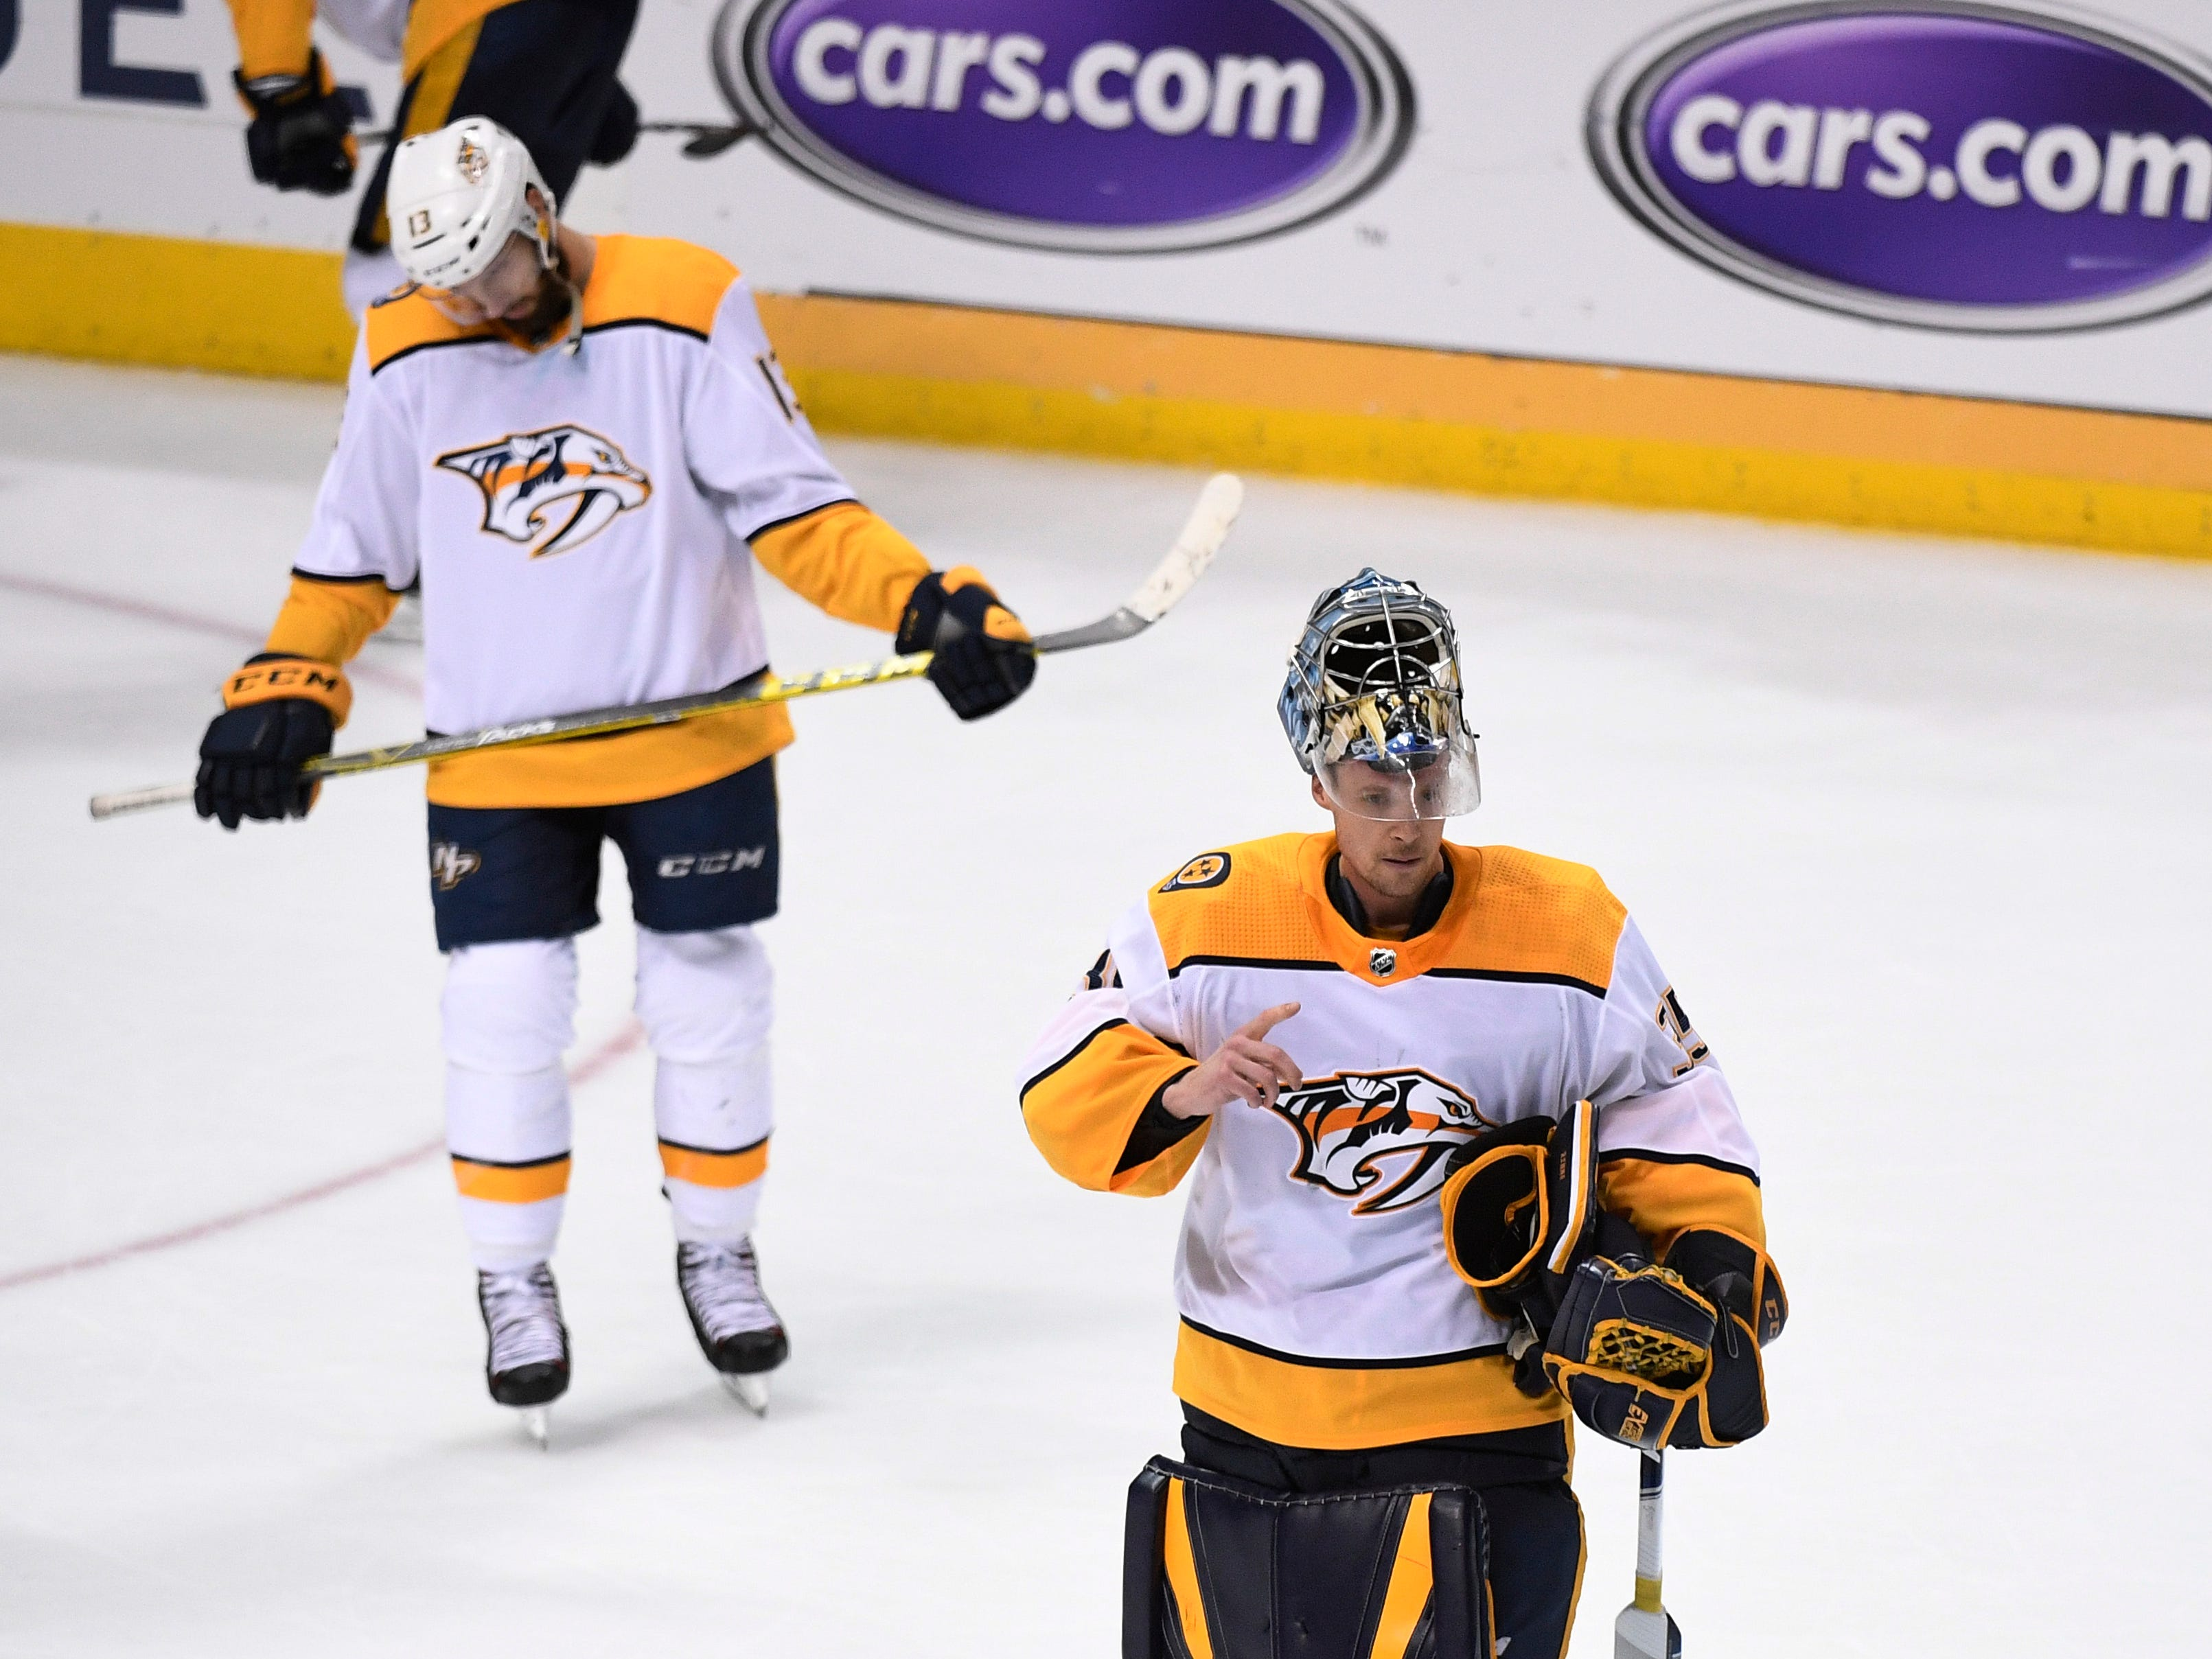 Nashville Predators center Nick Bonino (13) and goaltender Pekka Rinne (35) react to the team's overtime loss to the Dallas Stars in their divisional semifinal game at the American Airlines Center in Dallas, Texas, Monday, April 22, 2019.